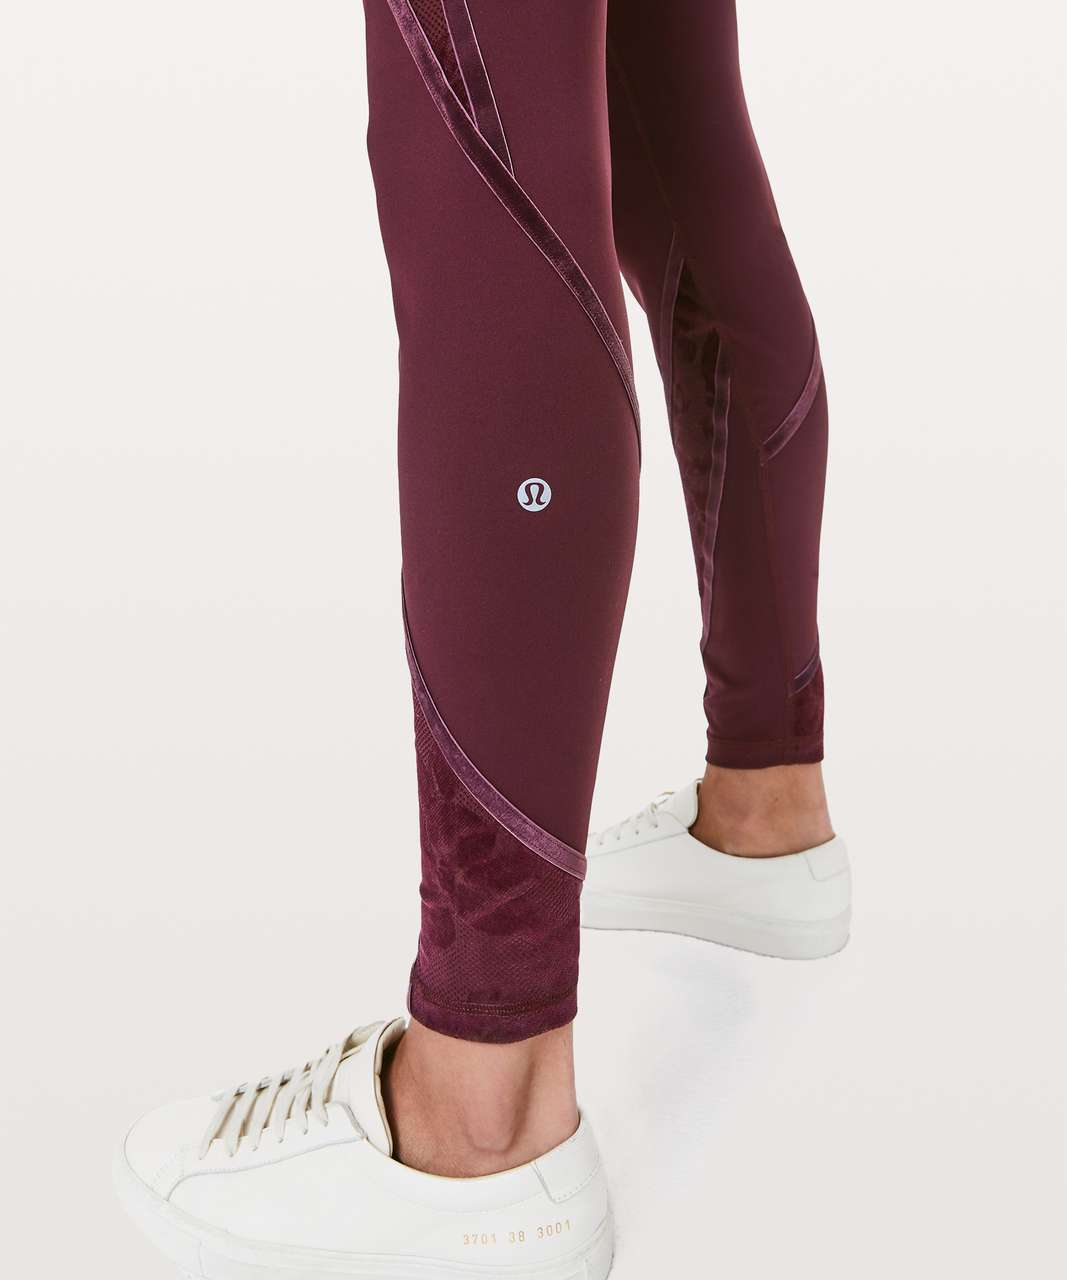 "Lululemon Wunder Under High-Rise Tight* Flocked 28"" - Dark Adobe / Scatter Floral Dark Adobe Dark Adobe"